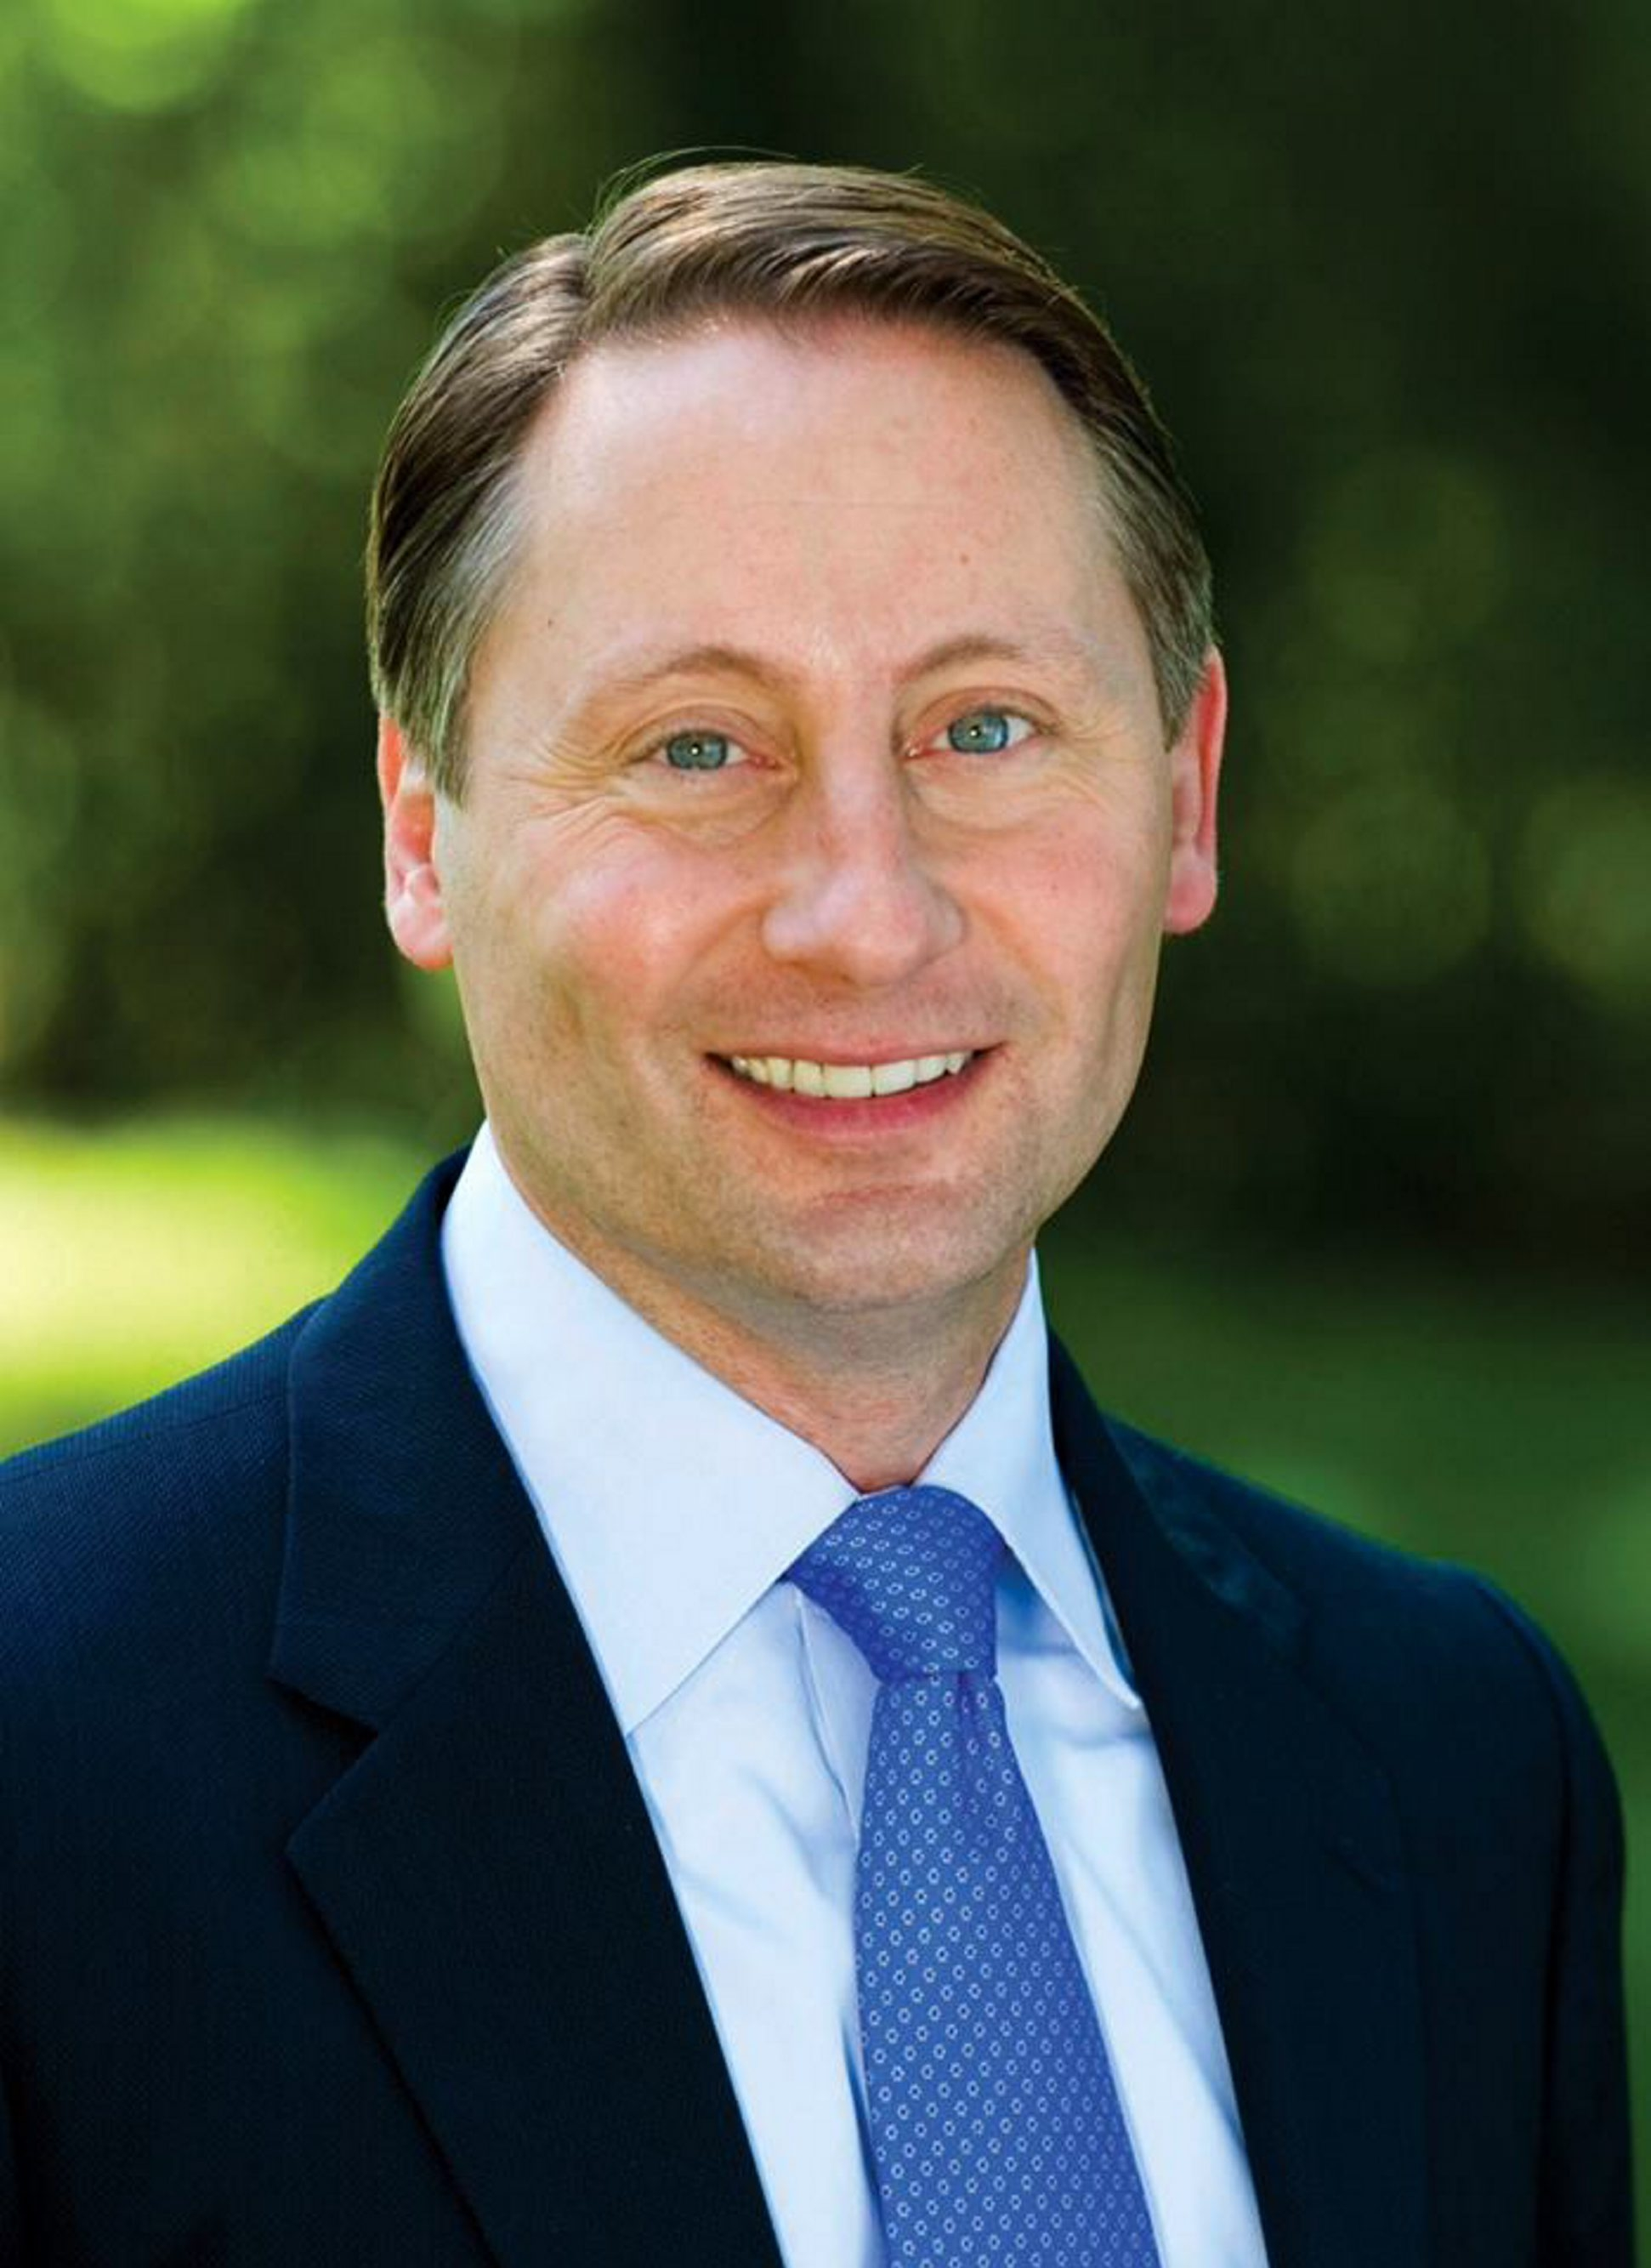 Rob Astorino met with Republican governors and donors in Scottsdale, Ariz.